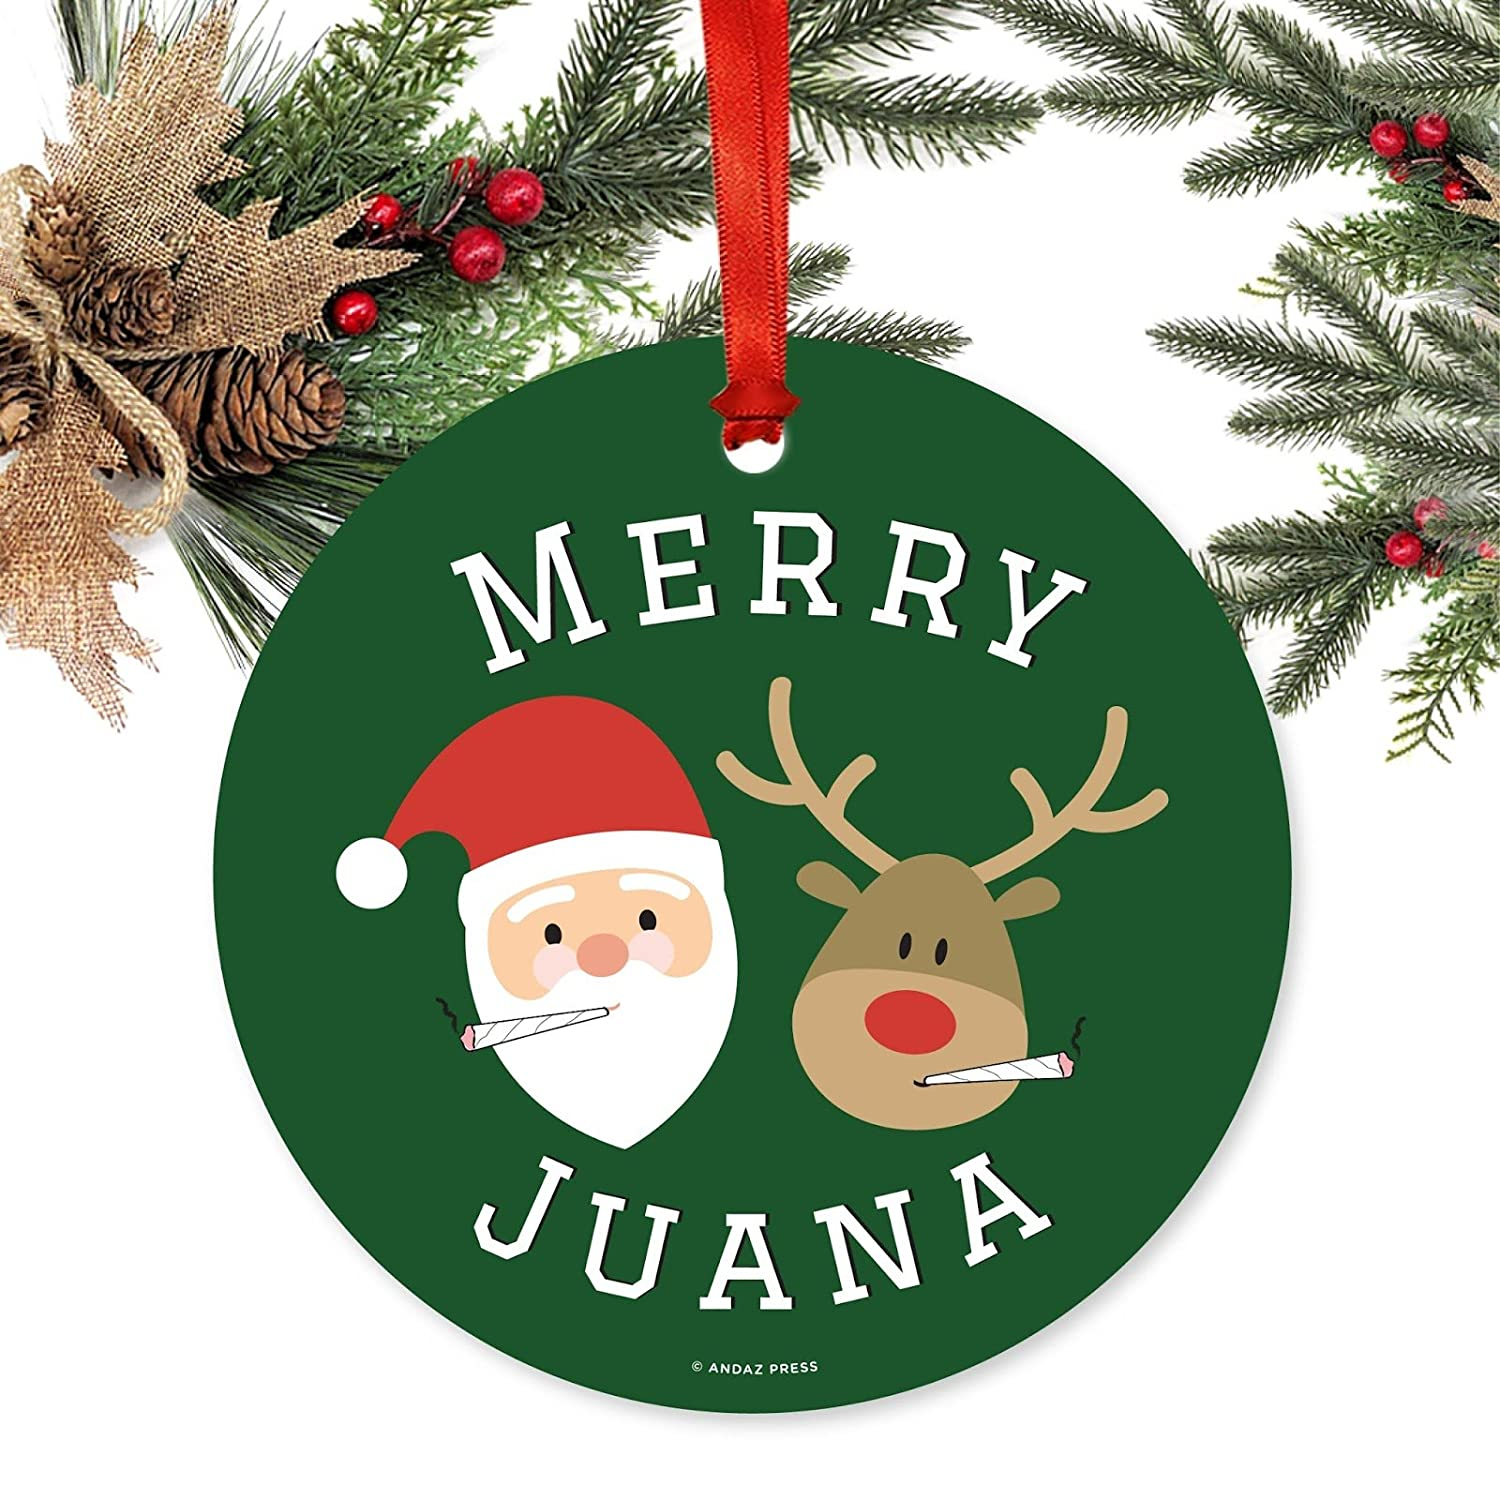 Christmas Weed.Andaz Press Marijuana Pot Cannabis Weed Round Metal Christmas Ornaments Merry Juana Reindeer Smoking Pot Cigarette Includes Ribbon And Gift Bag